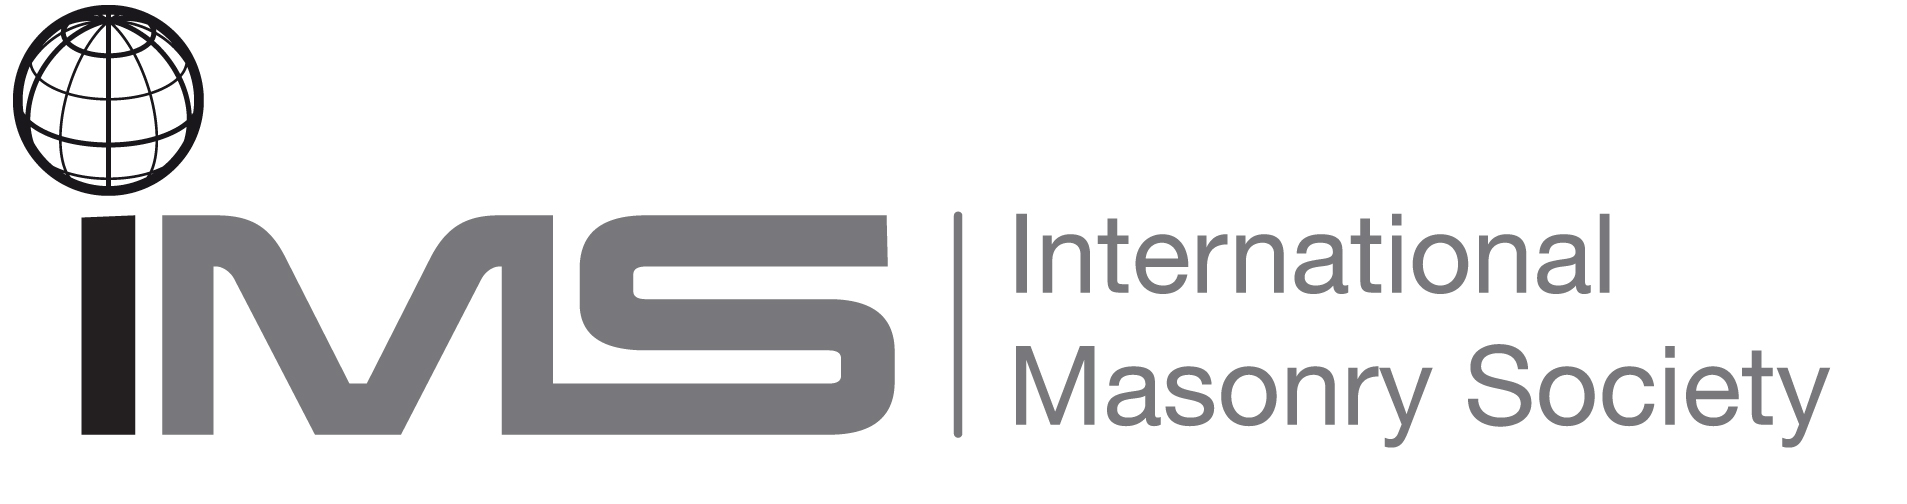 The International Masonry Society